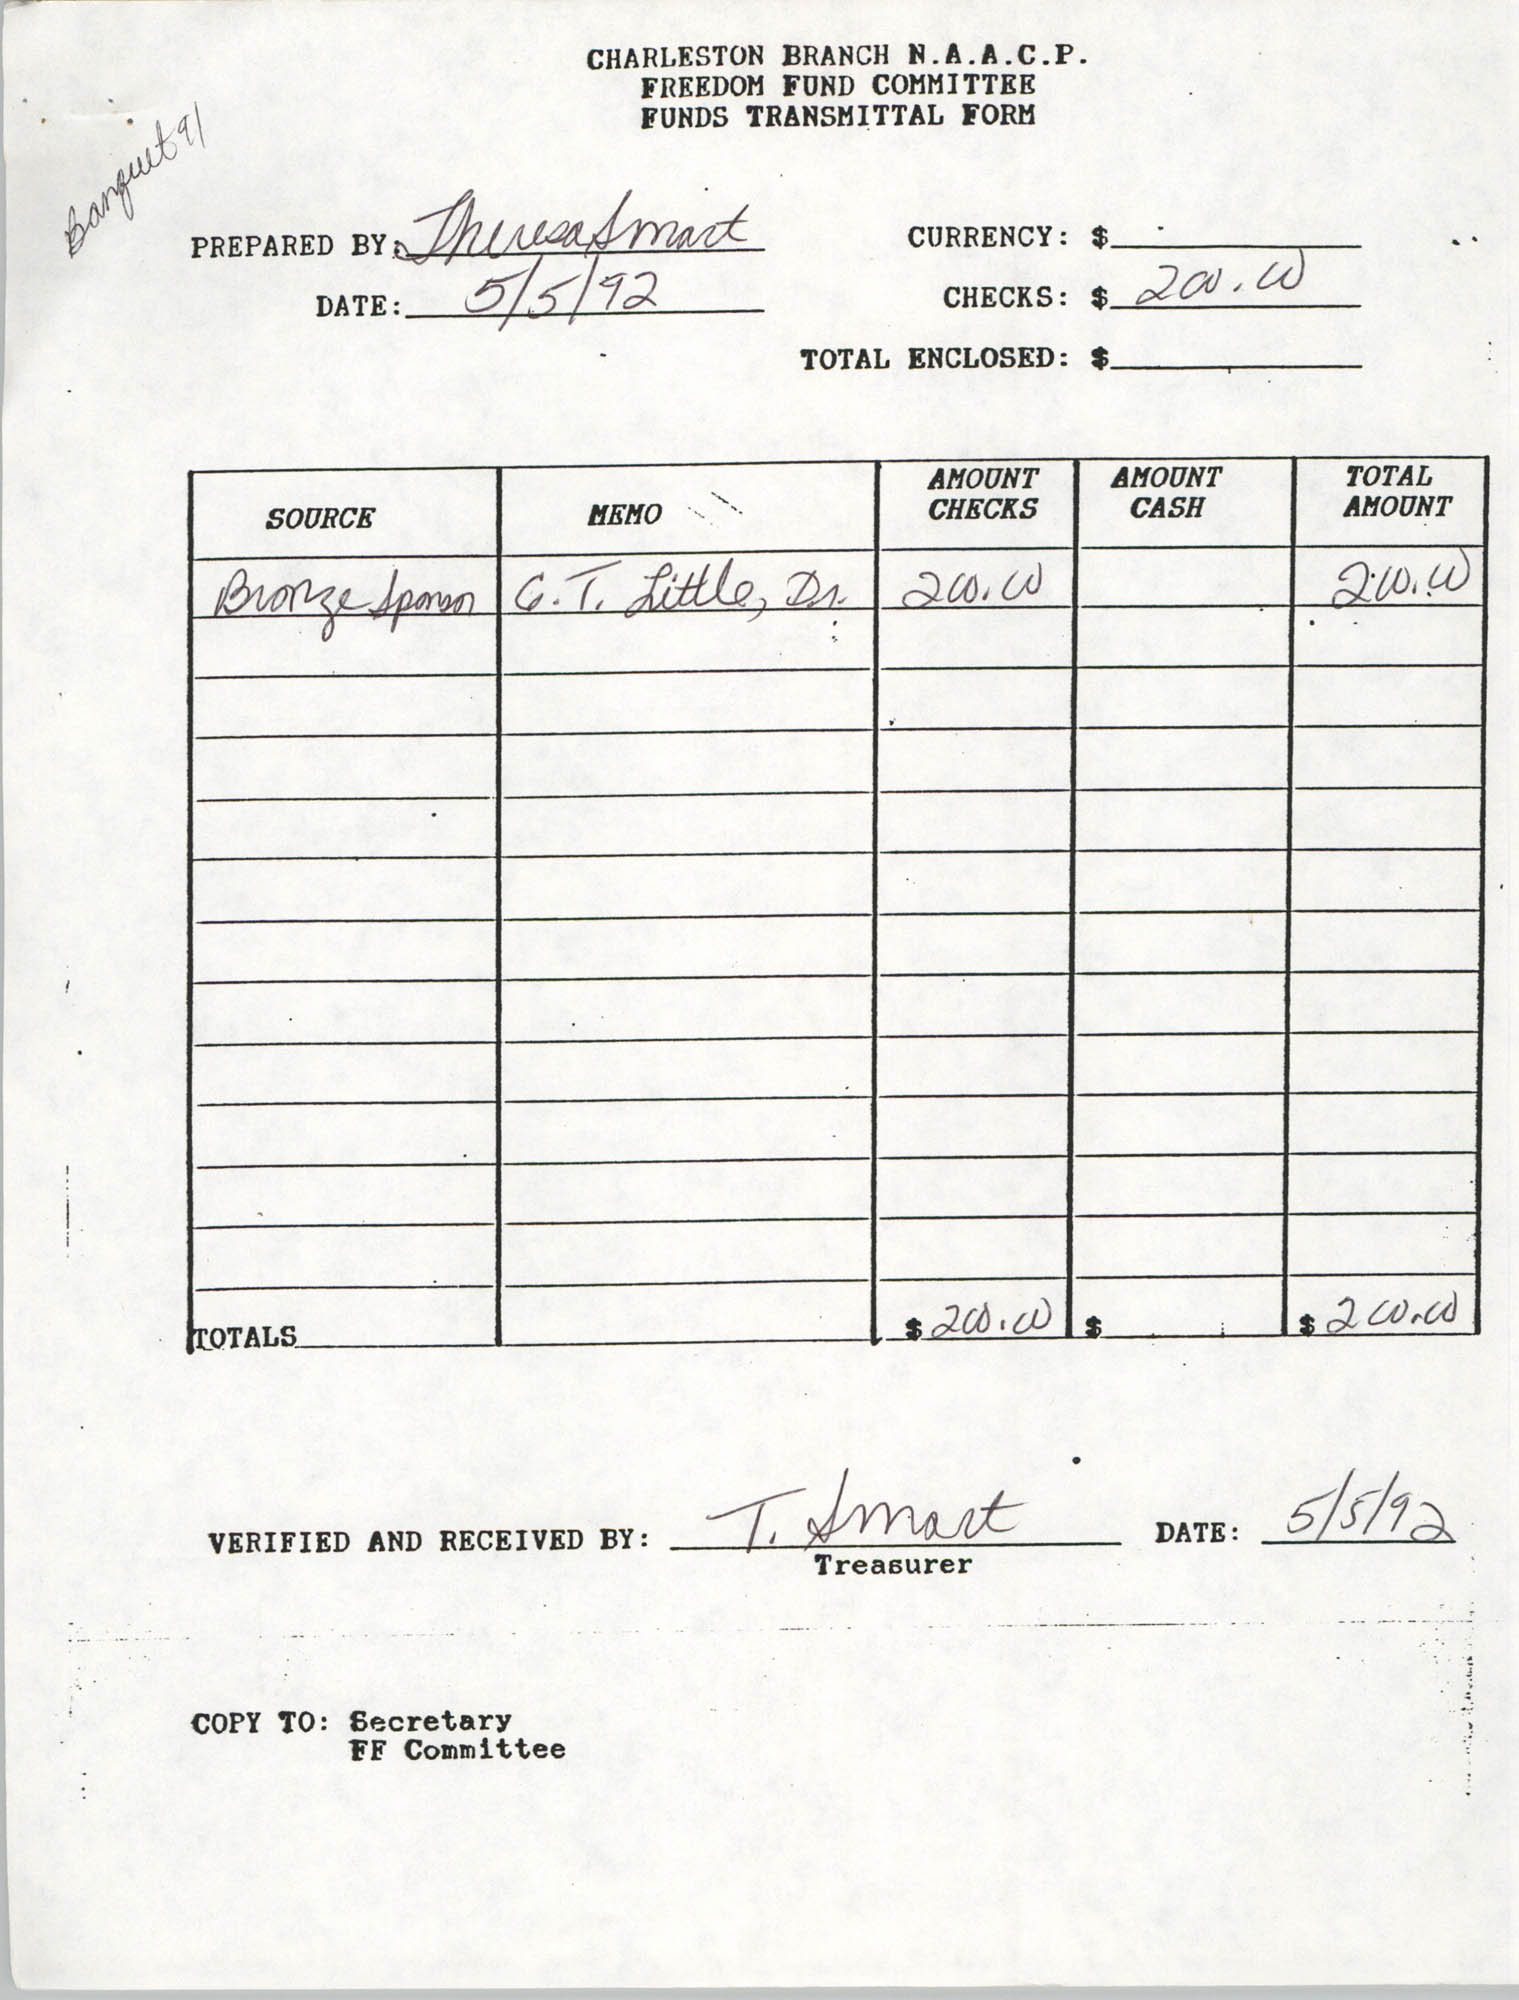 Charleston Branch of the NAACP Funds Transmittal Forms, May 1992, Page 1